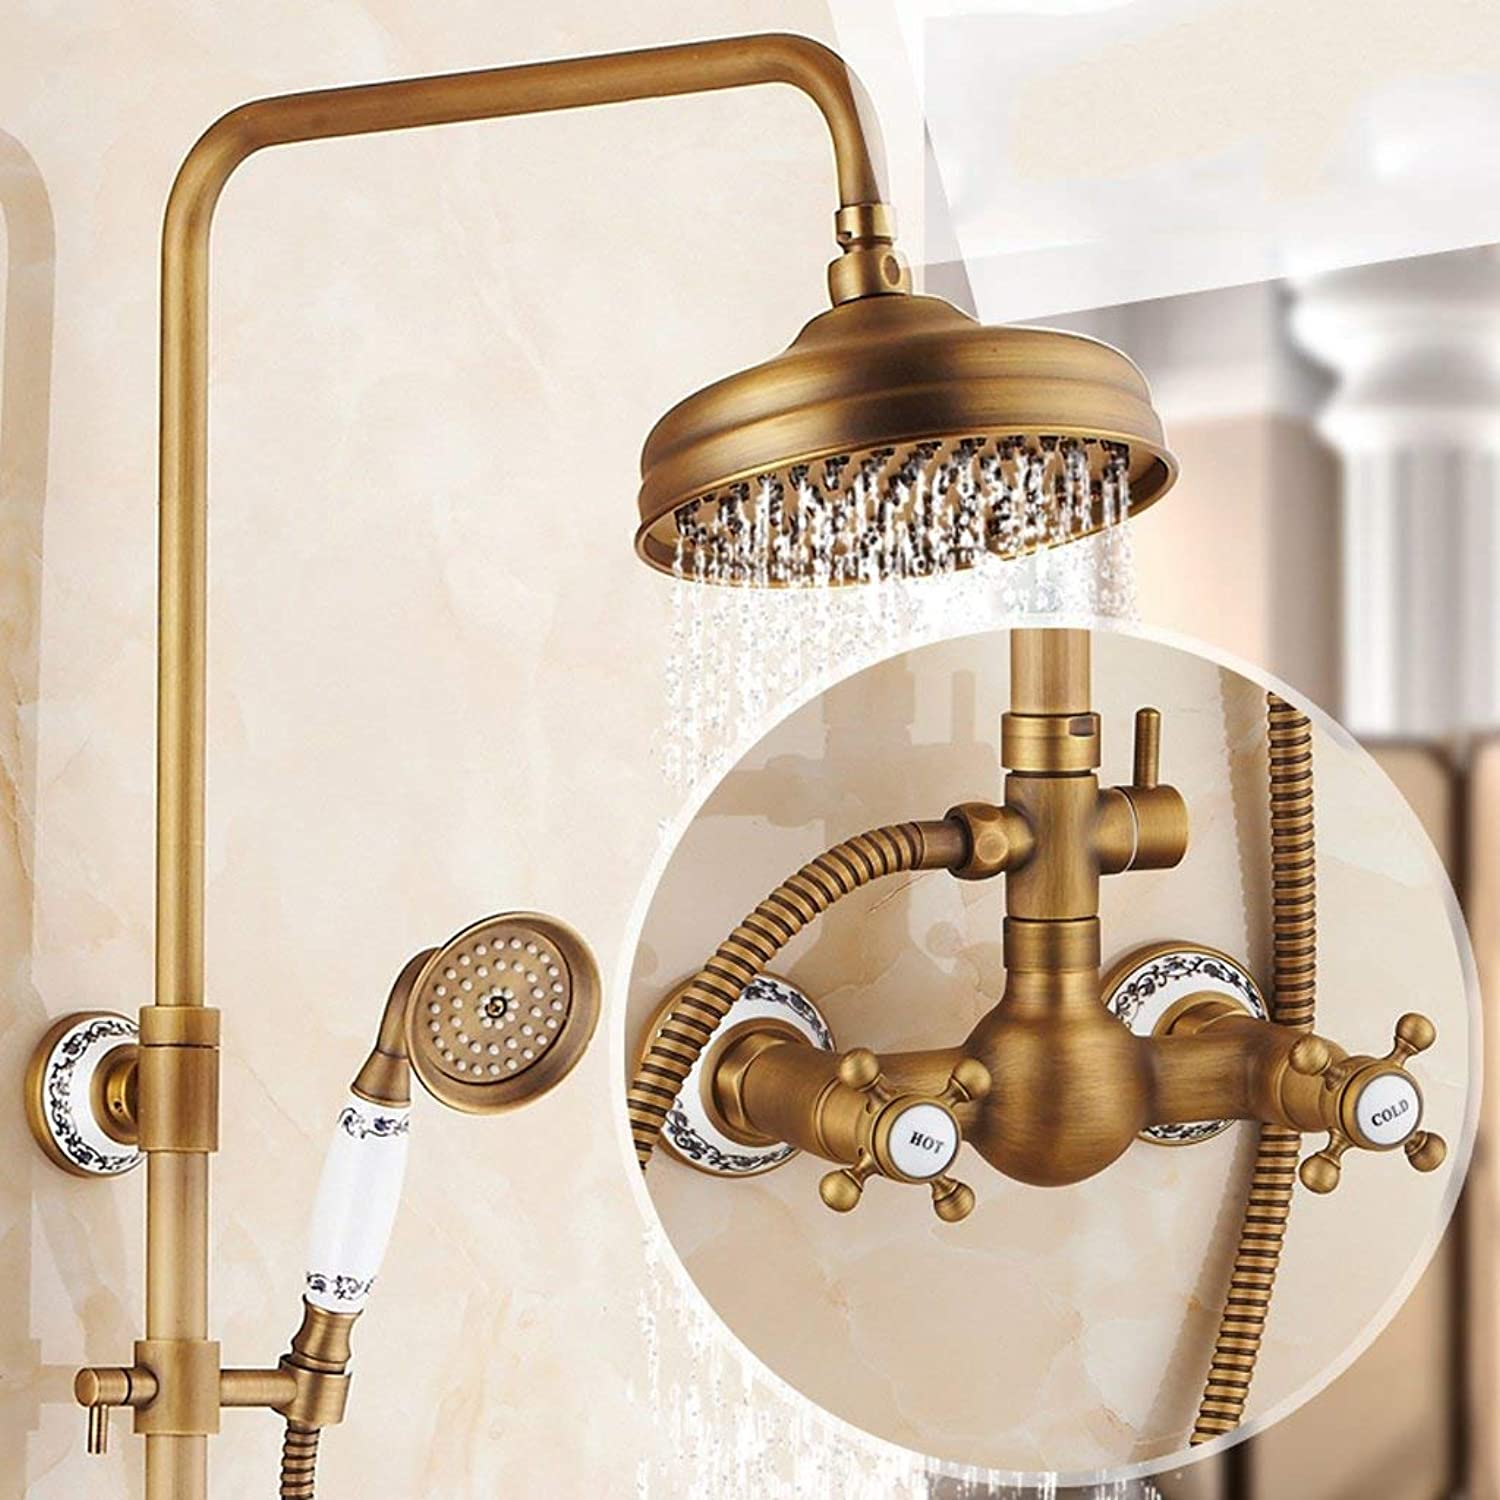 Shower set European-style Retro Copper Shower Shower Hot And Cold Faucet Wall-mounted, Can Be Lifted With redation (color    7)